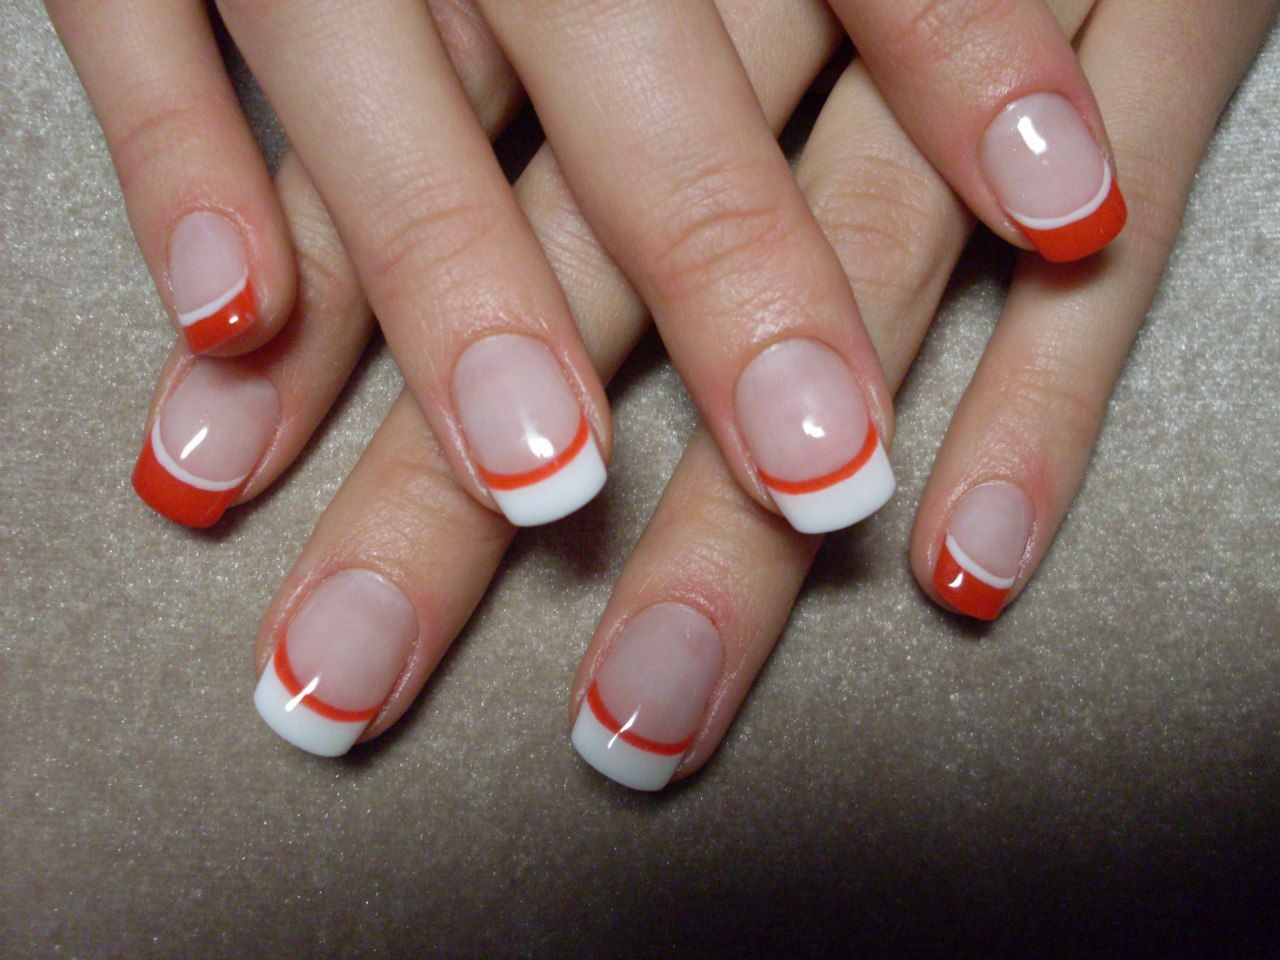 Colored french nail design - Acrylic Nail Art French Manicure Different Colors In Gallery